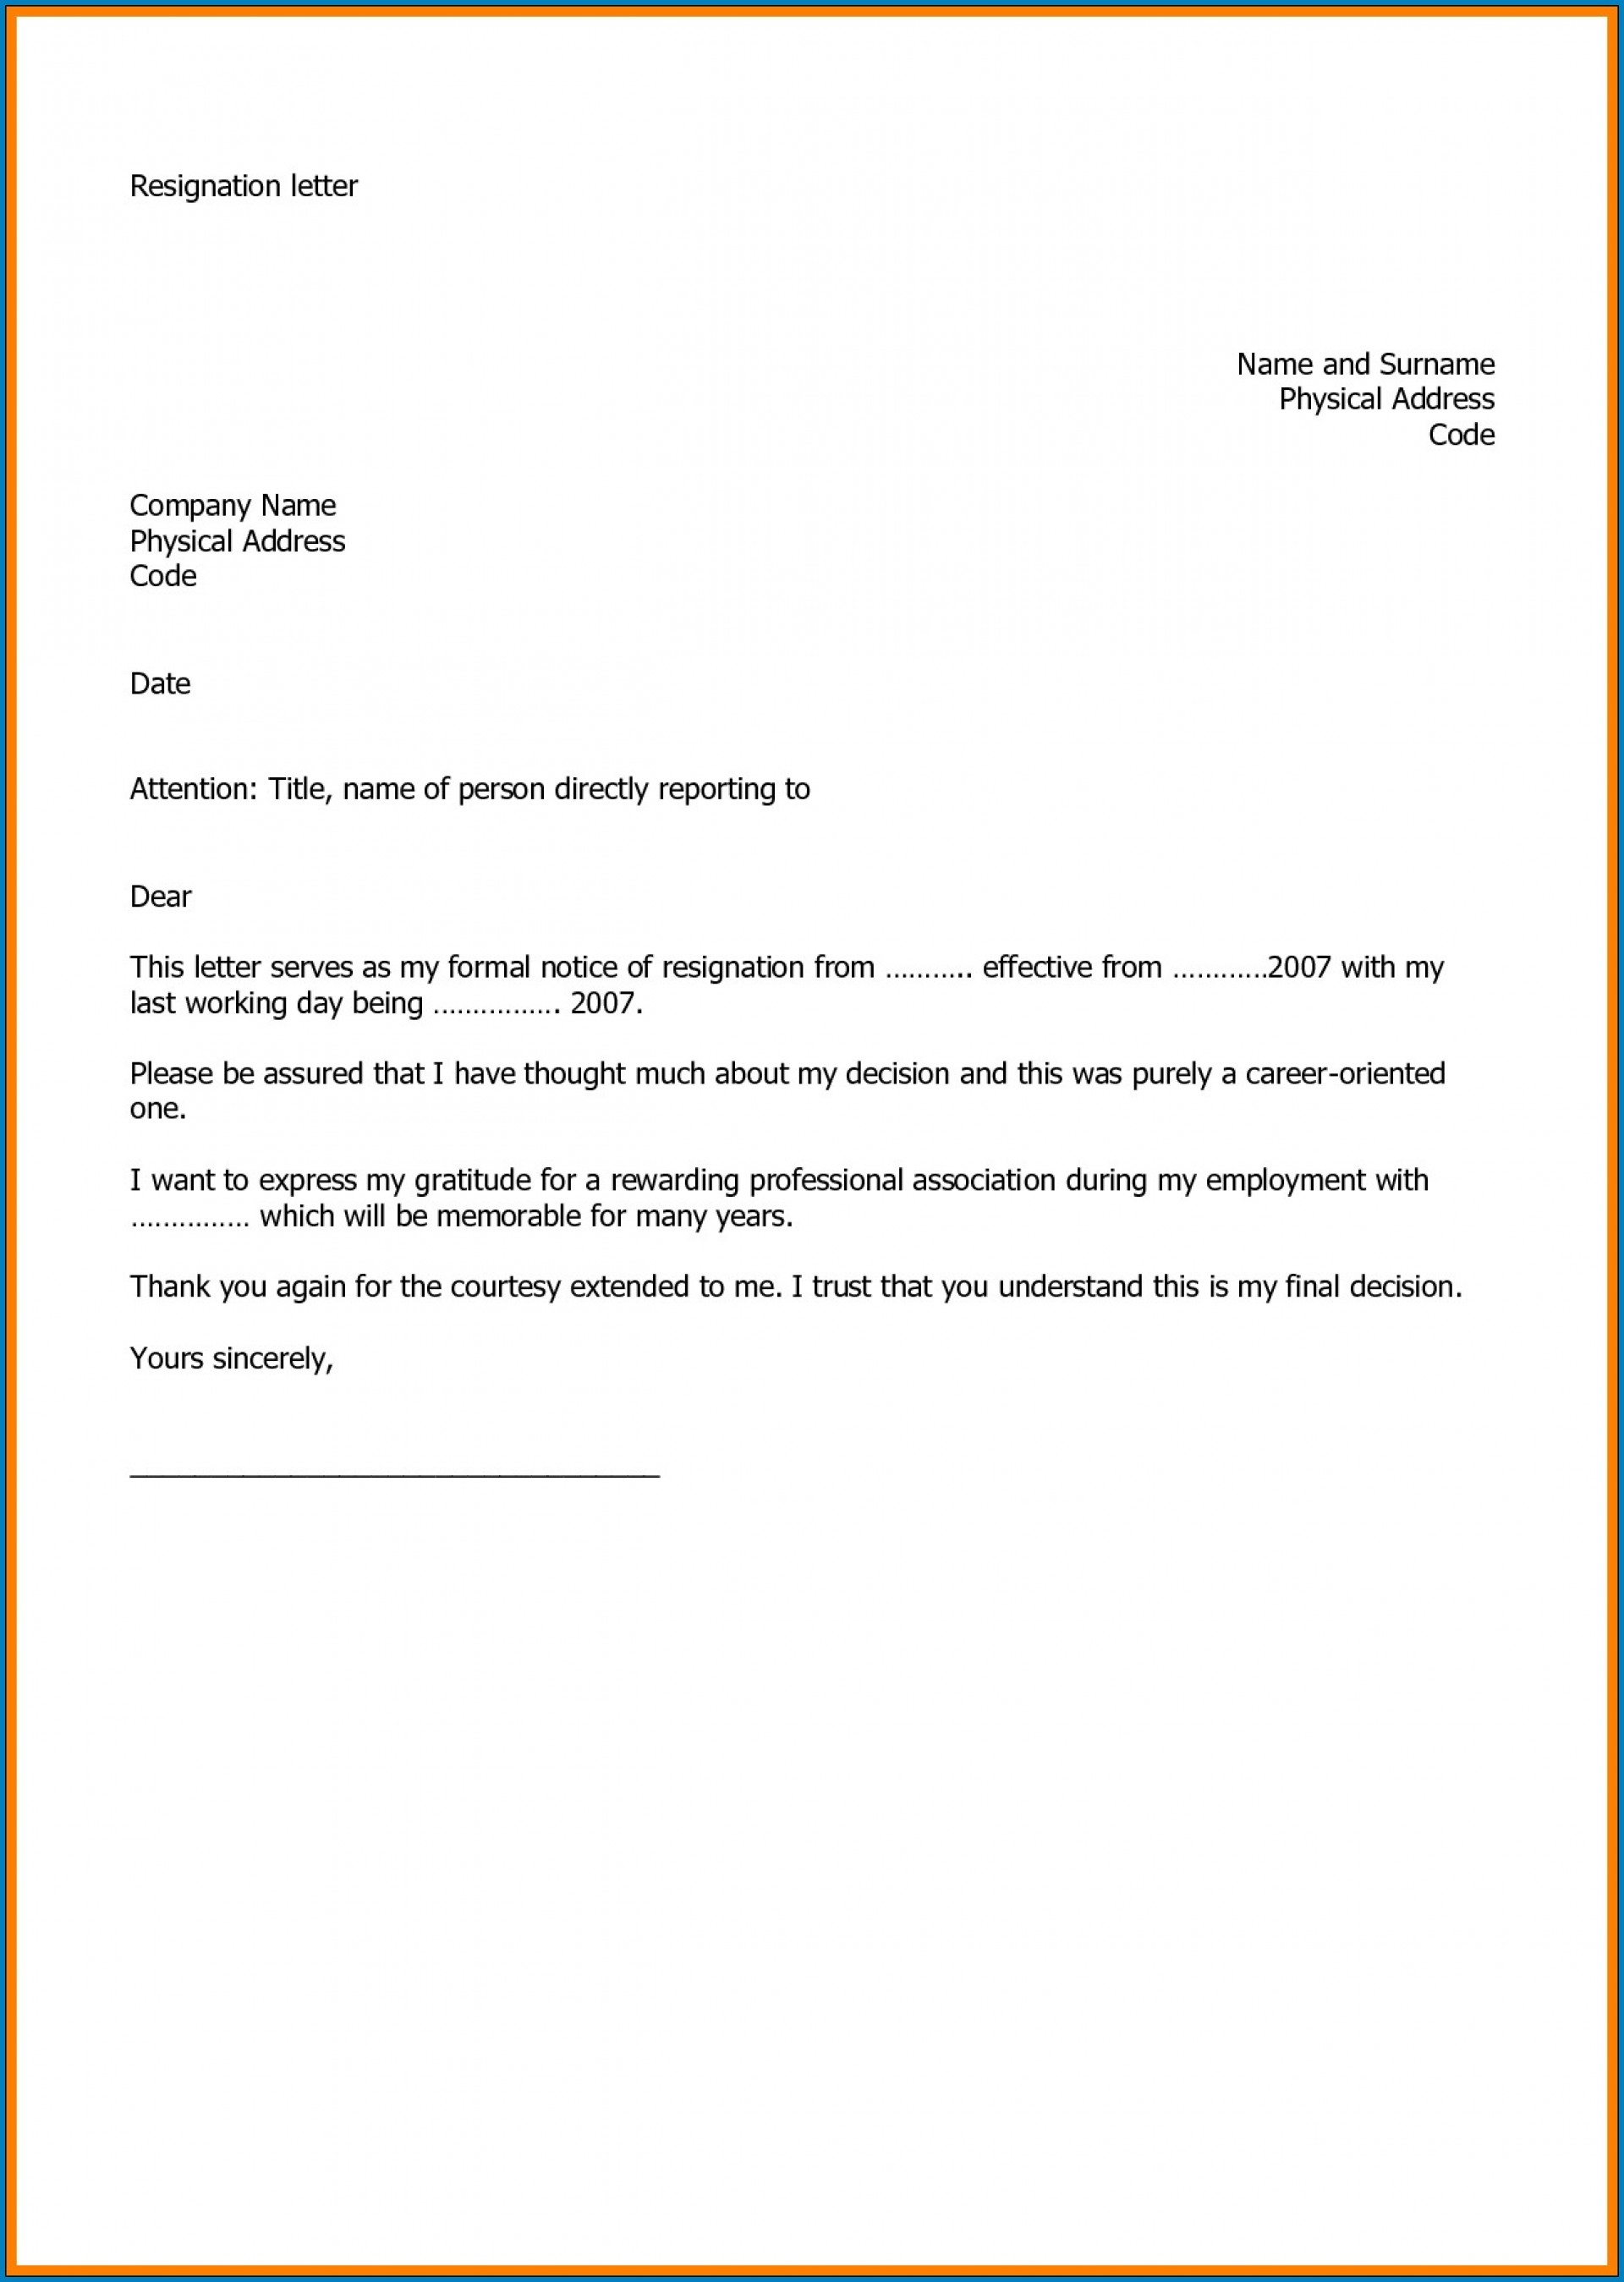 005 Marvelou Professional Resignation Letter Template Design  Best Format Pdf How To Write A1920